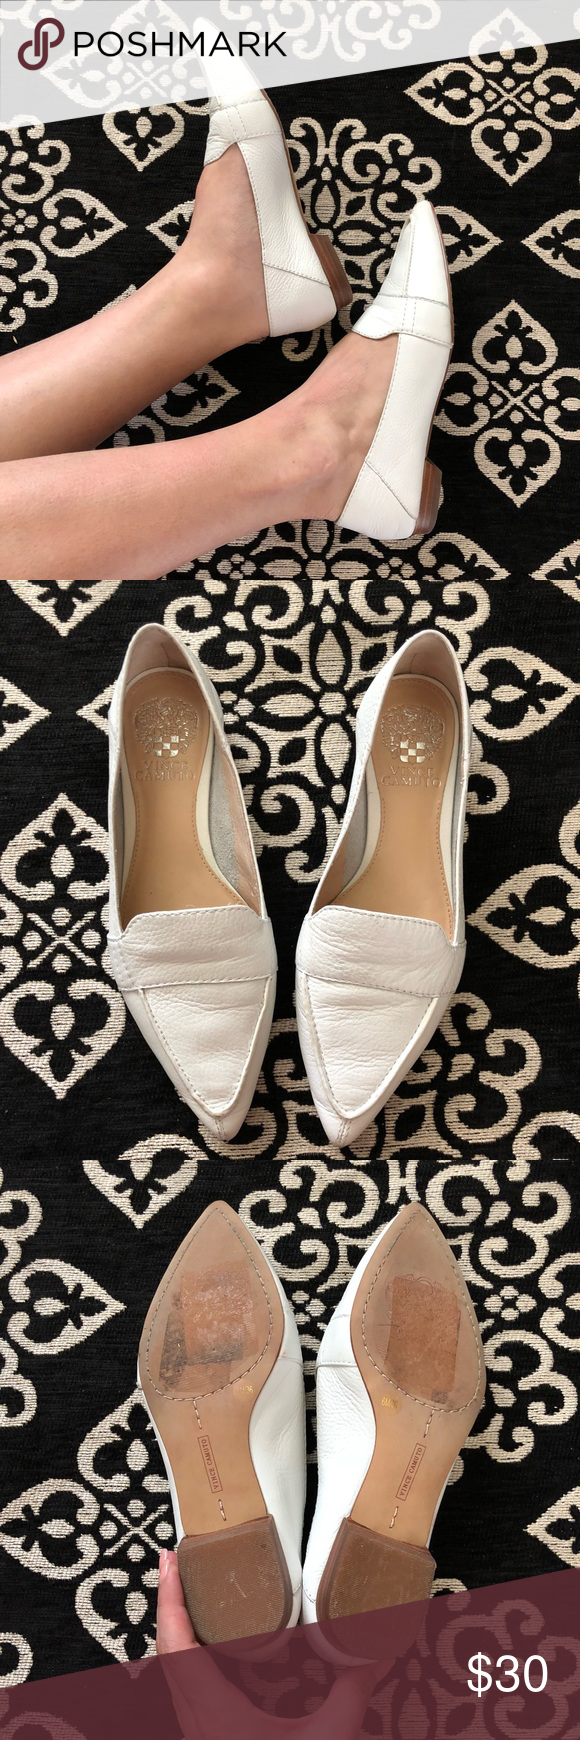 a3c6dc04752 Vince Camuto Maita Flats Vince Camuto Maita flats in white leather. In  excellent condition. Women s size 6. No box. ✖ no trades ✖ Vince Camuto  Shoes ...